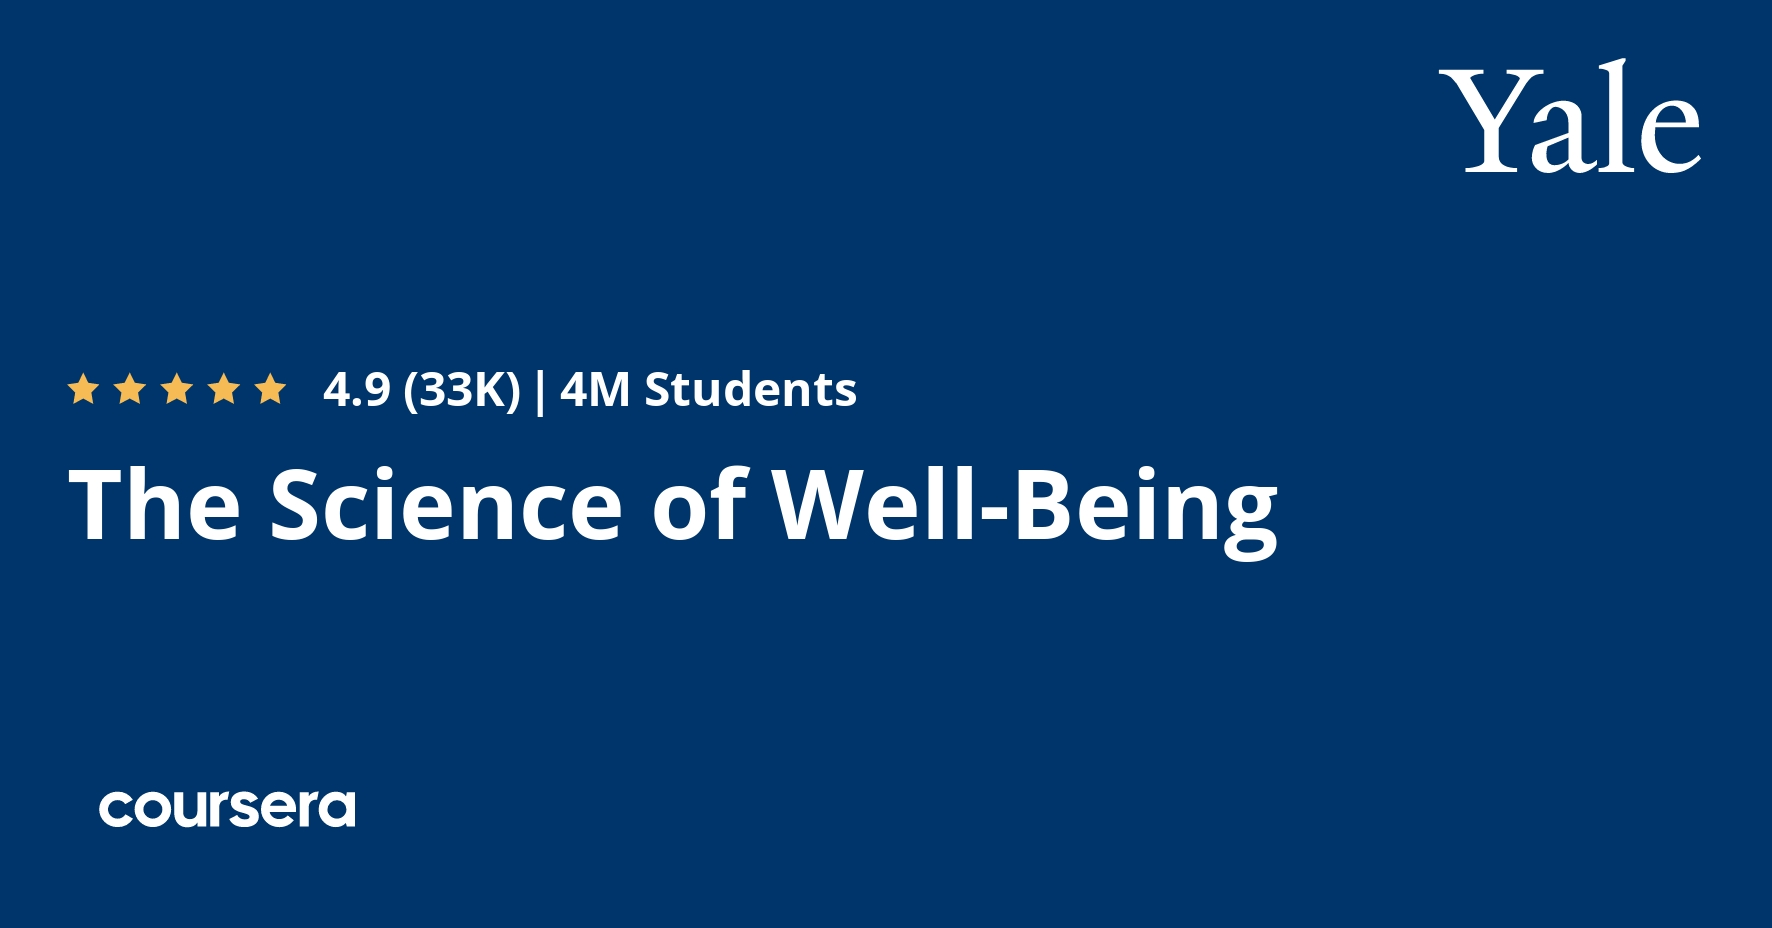 The Science of Well-Being (Coursera)